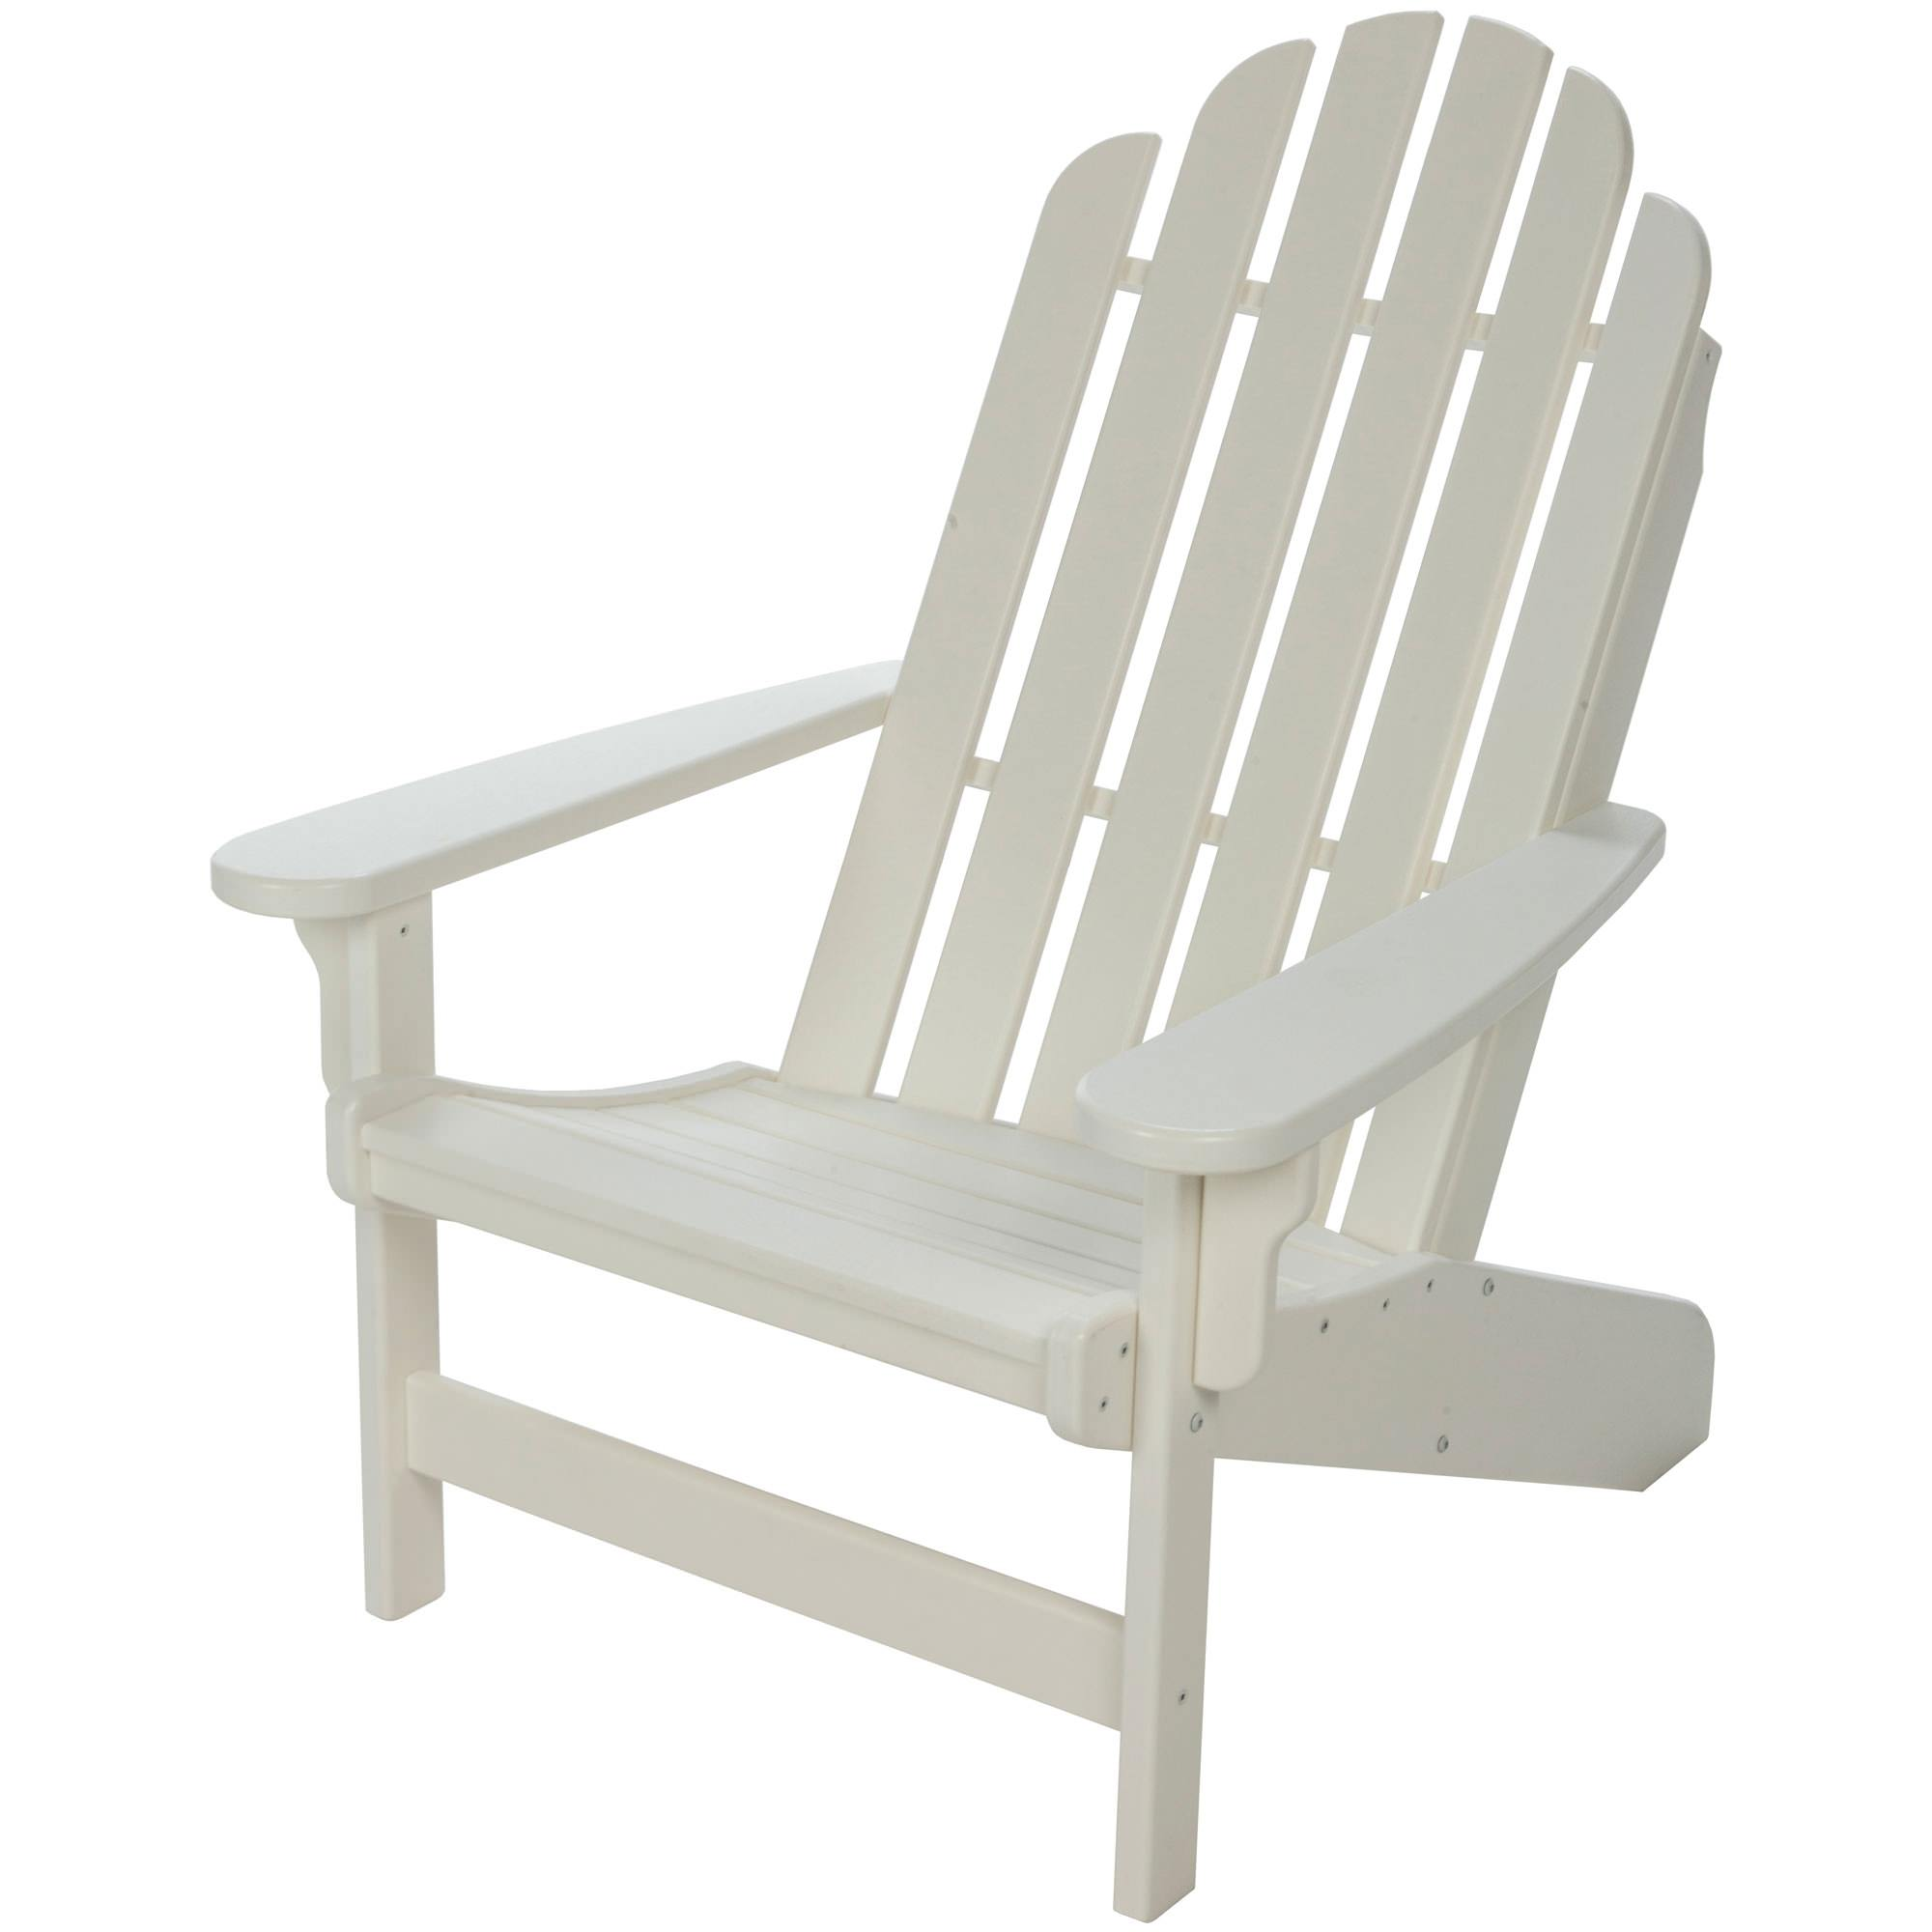 Lifetime Essential Adirondack Chair White NHH Durawood